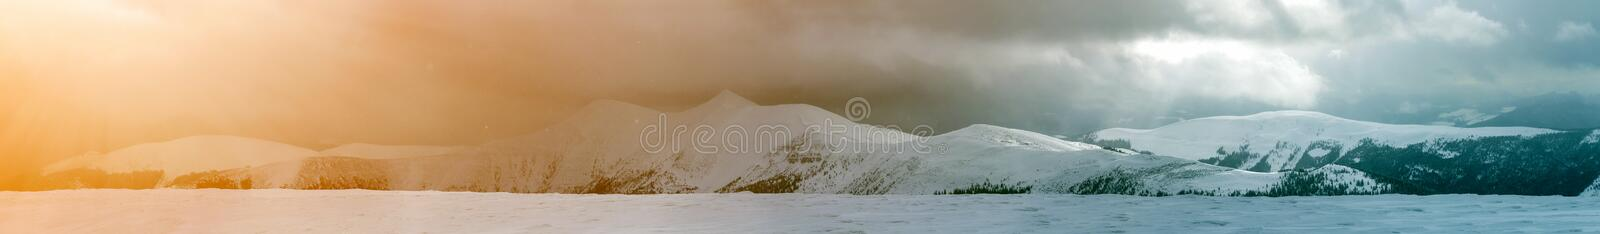 Winter mountain view in Carpathian mountains with dramatic clouds.  royalty free stock photography